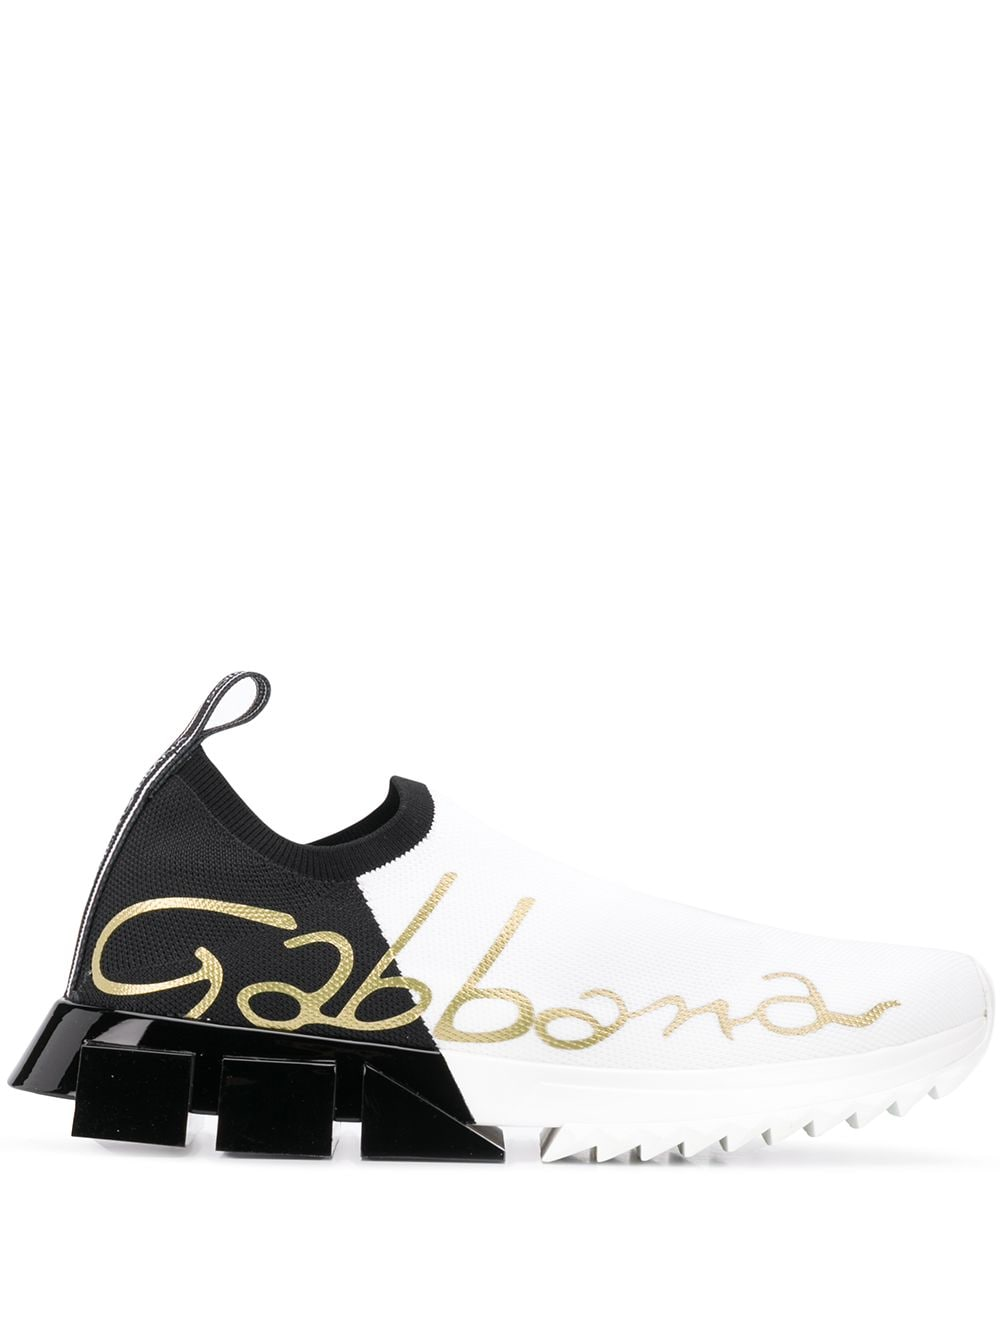 Sorrento colour block leather sneakers DOLCE & GABBANA |  | CK1681-AA10189697